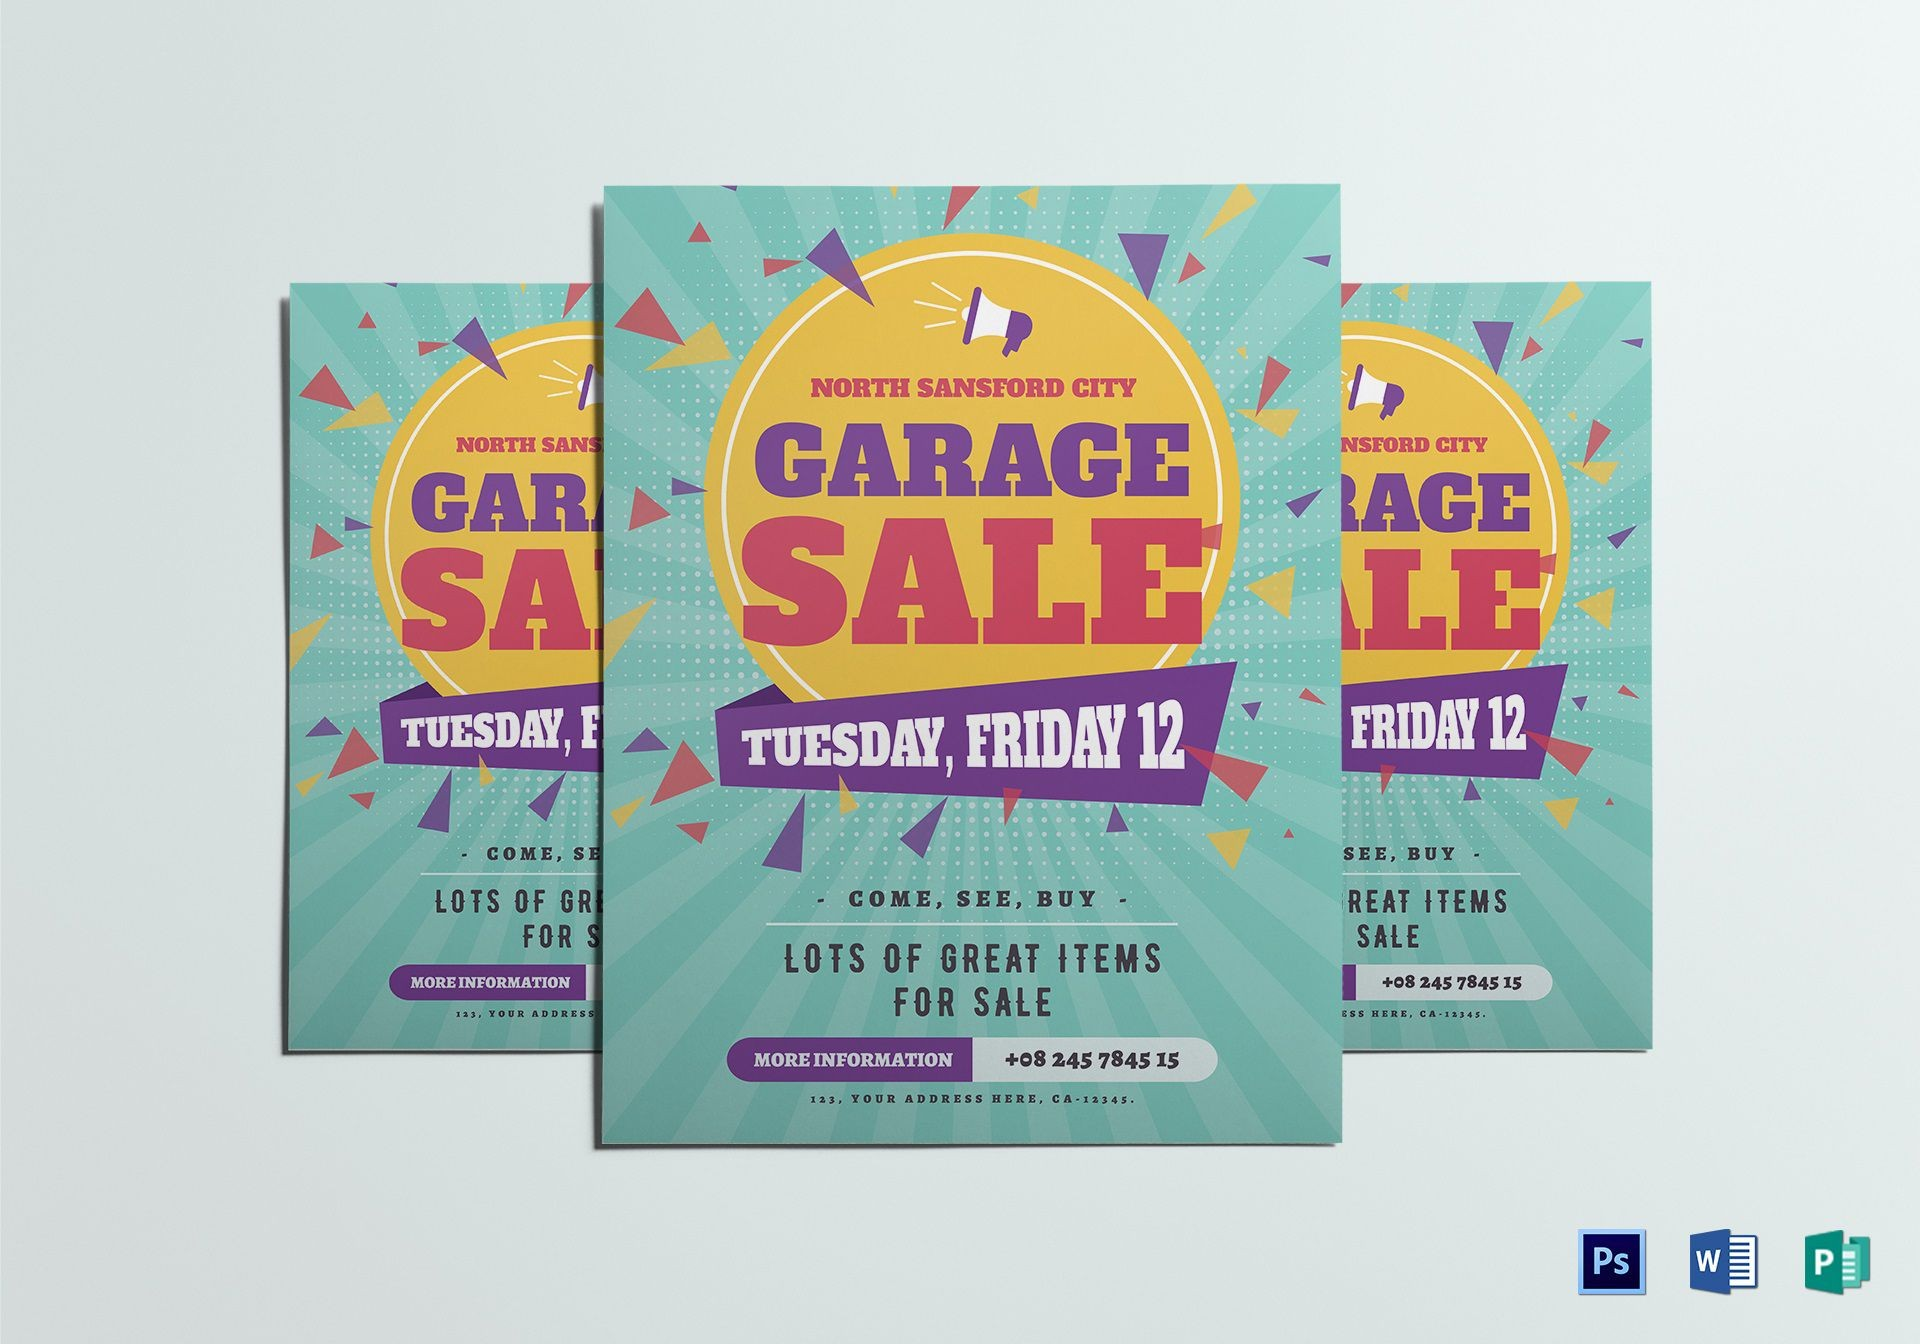 007 Wondrou Yard Sale Flyer Template Idea  Free Garage Microsoft Word1920